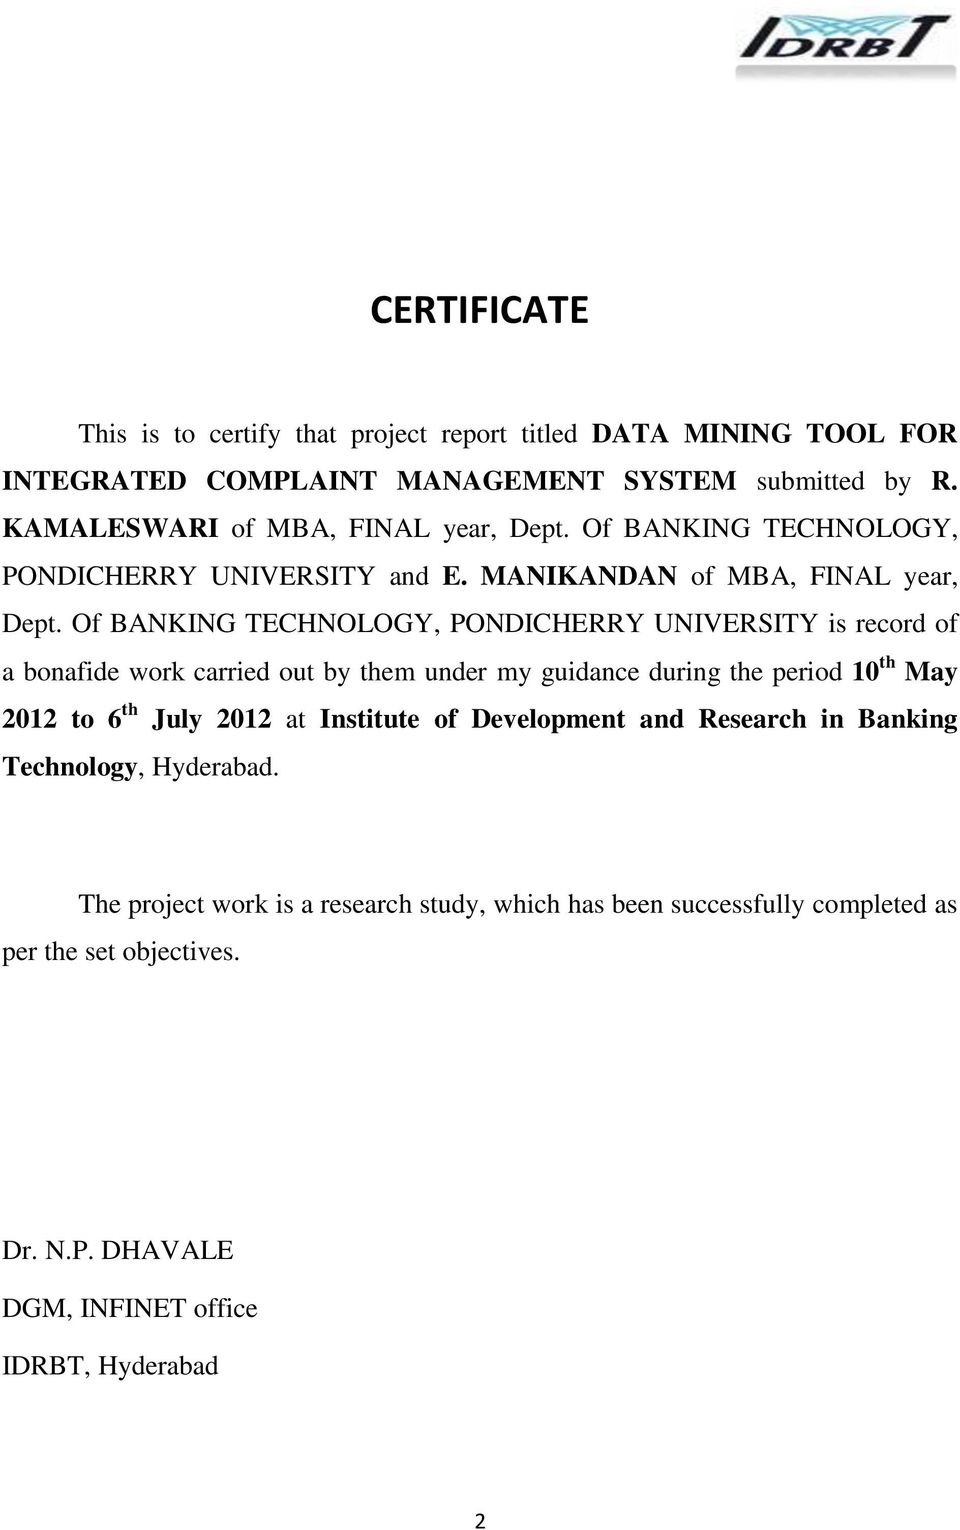 Of BANKING TECHNOLOGY, PONDICHERRY UNIVERSITY is record of a bonafide work carried out by them under my guidance during the period 10 th May 2012 to 6 th July 2012